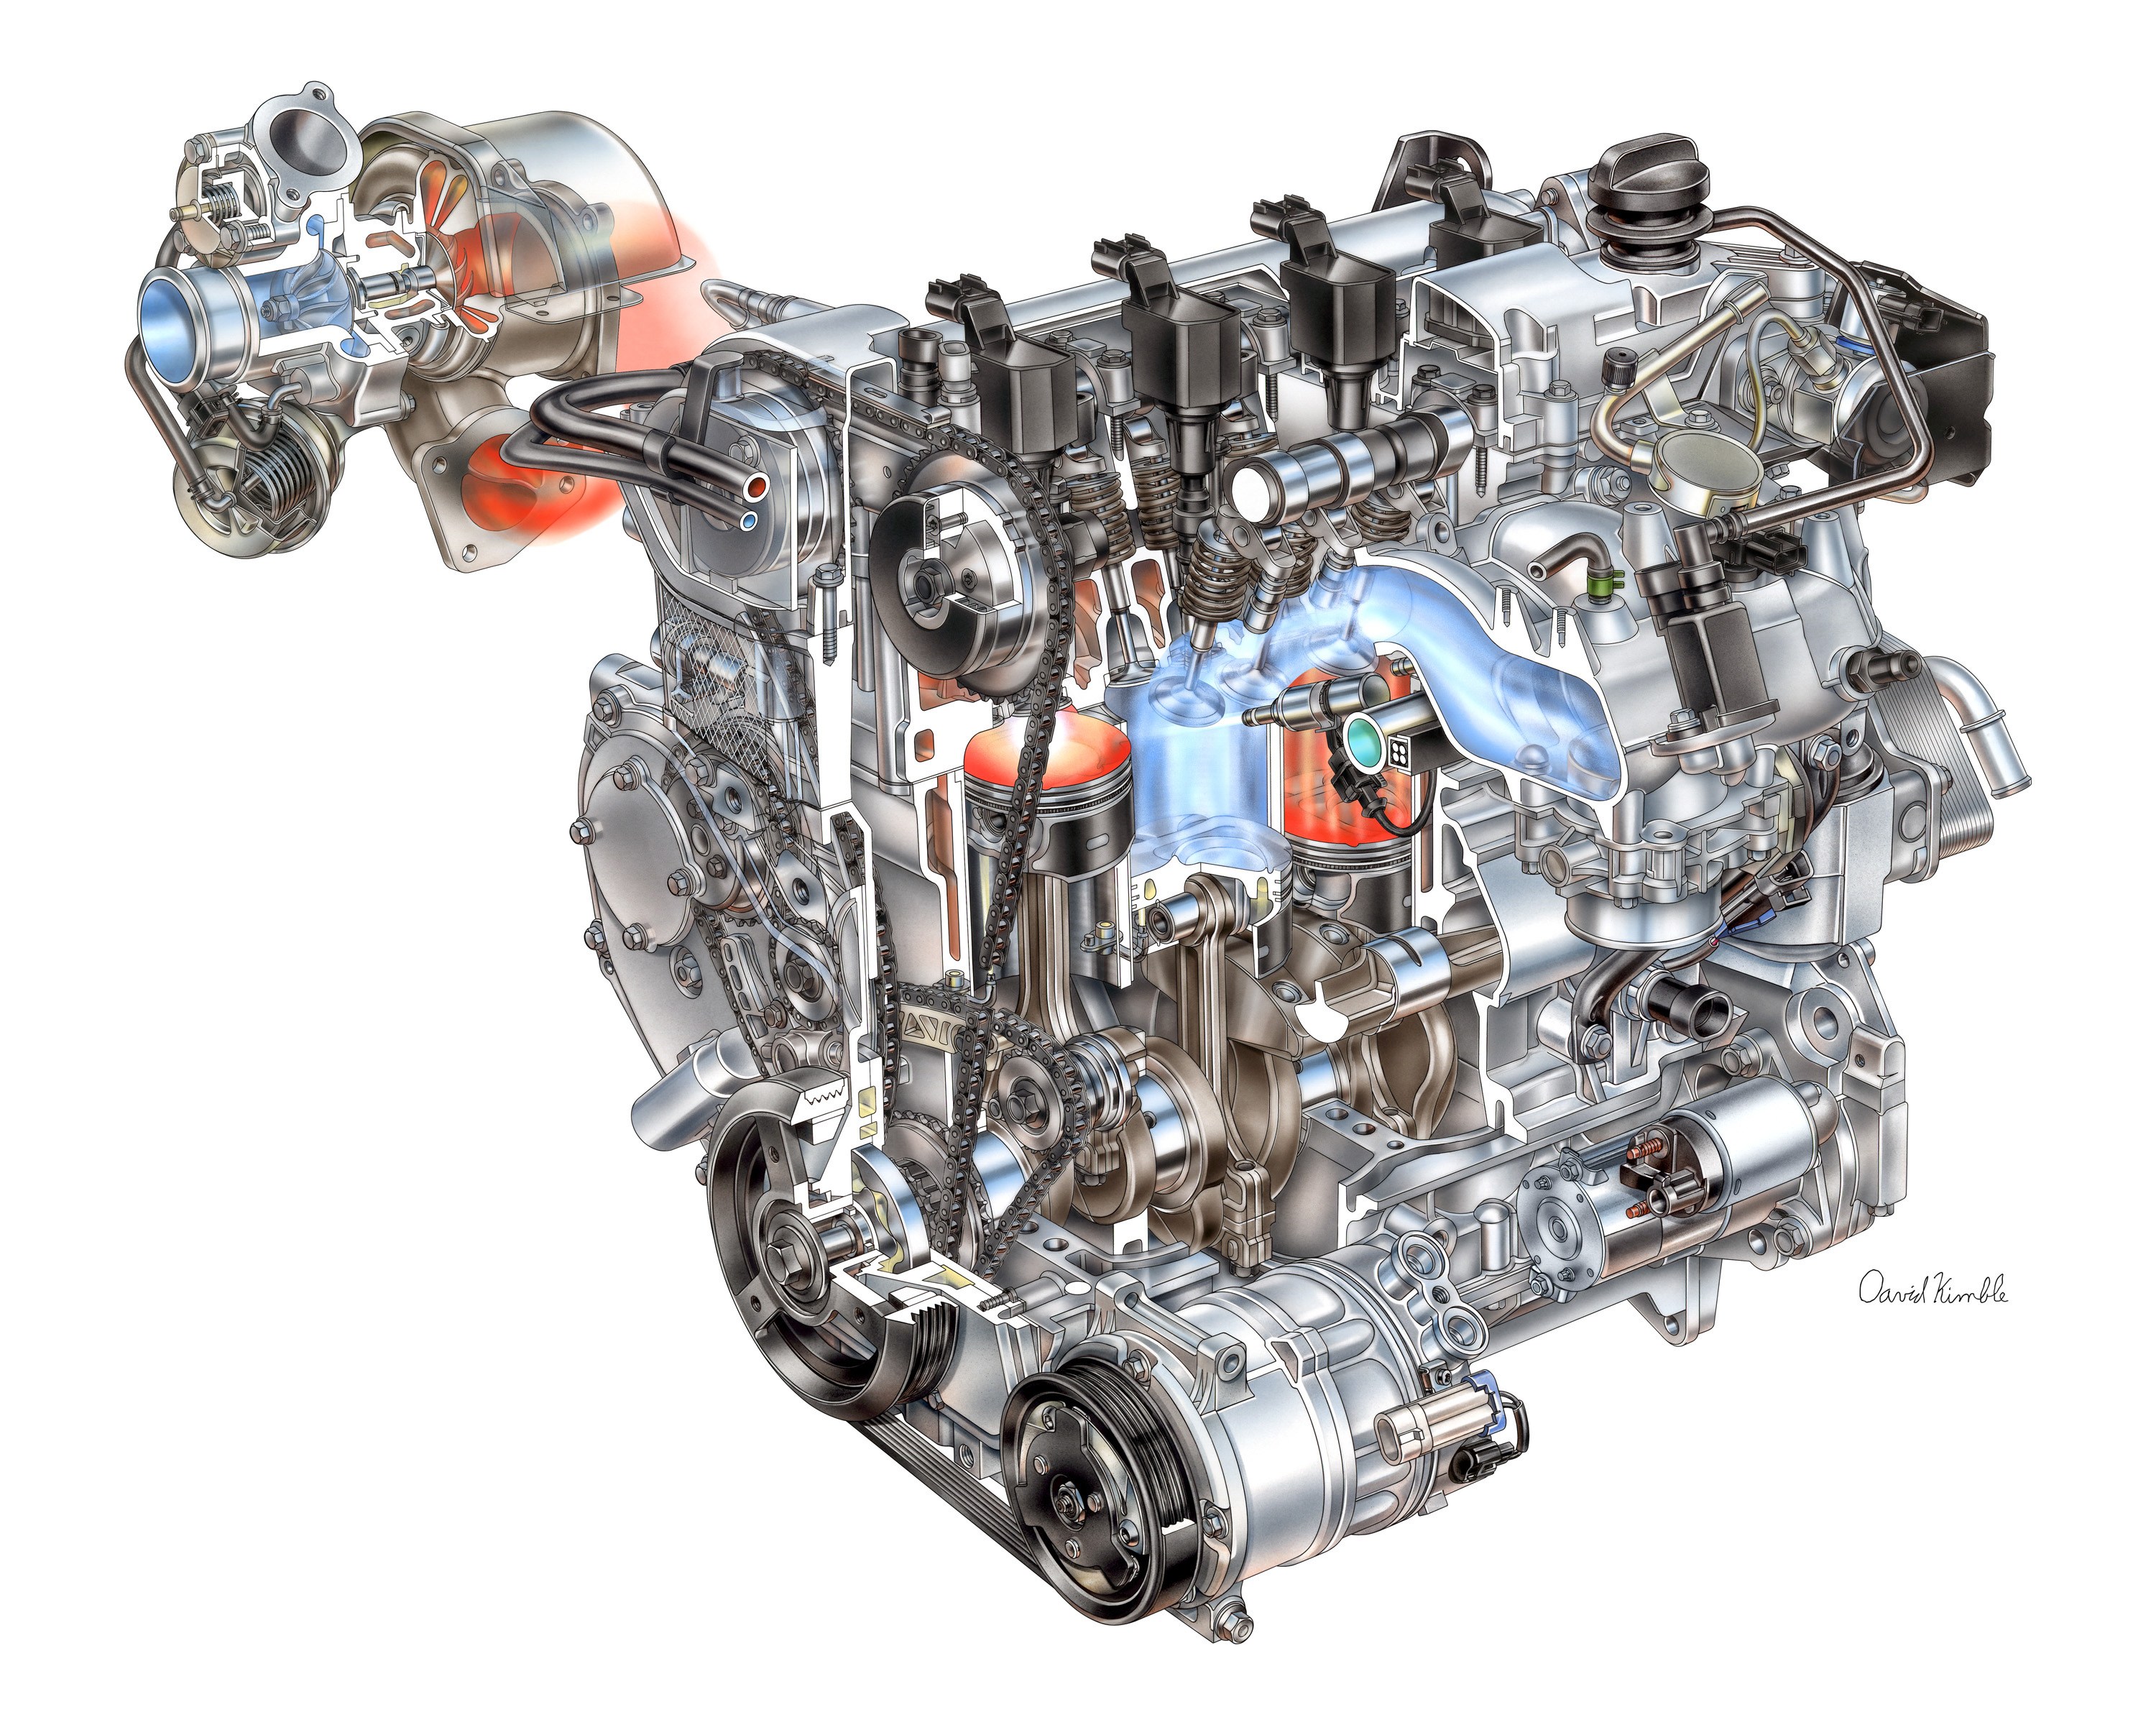 2011 buick regal engine diagram experts of wiring diagram u2022 rh evilcloud co uk 3.8L Engine Turbo Buick 78 Buick Regal